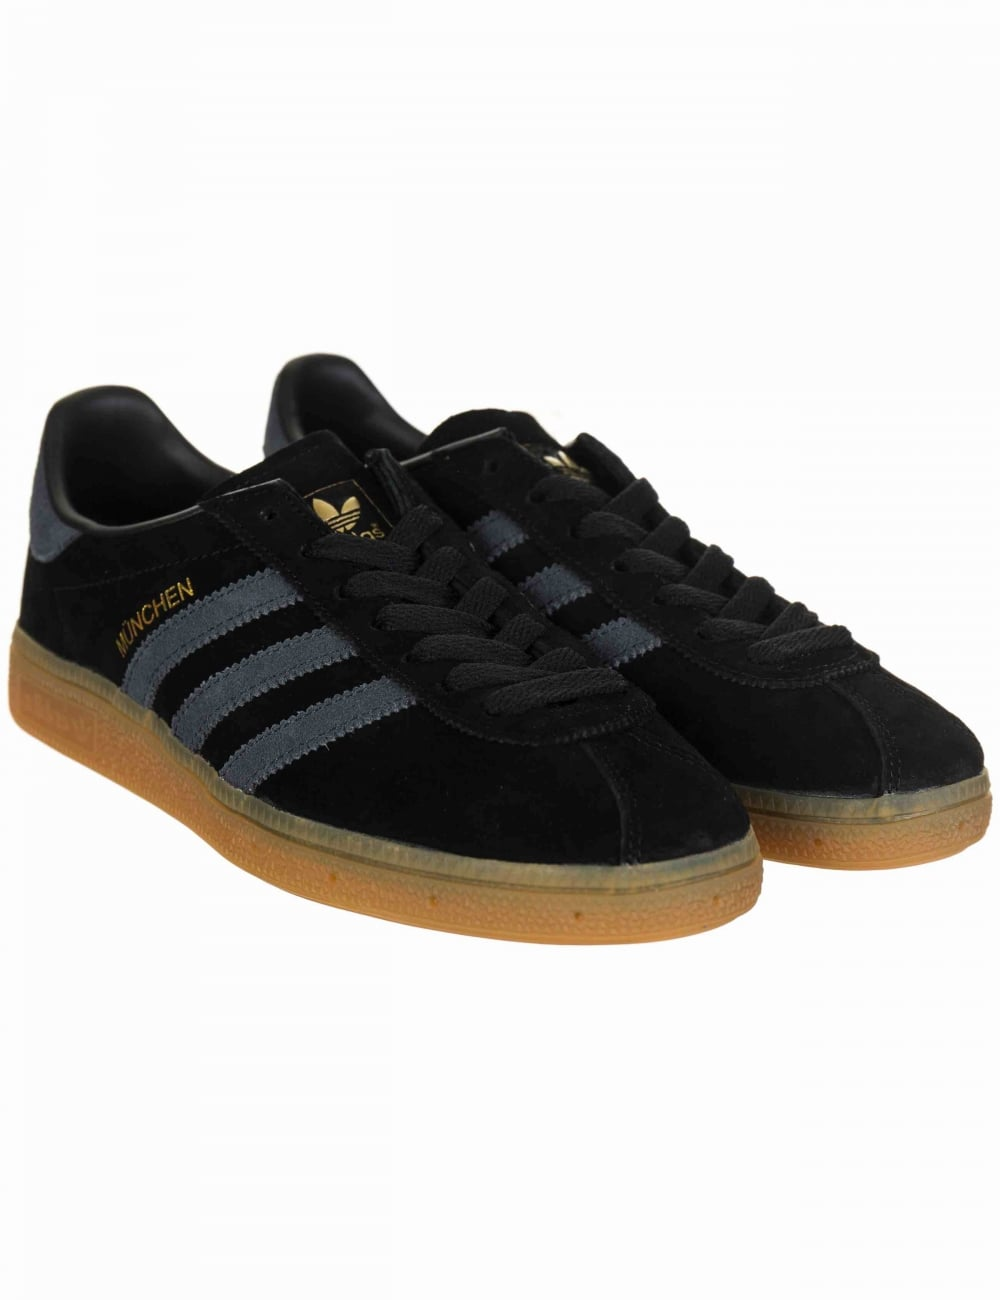 From Fat Munchen Adidas Core Originals Shoes Footwear Blacknavy f4SYRq0w